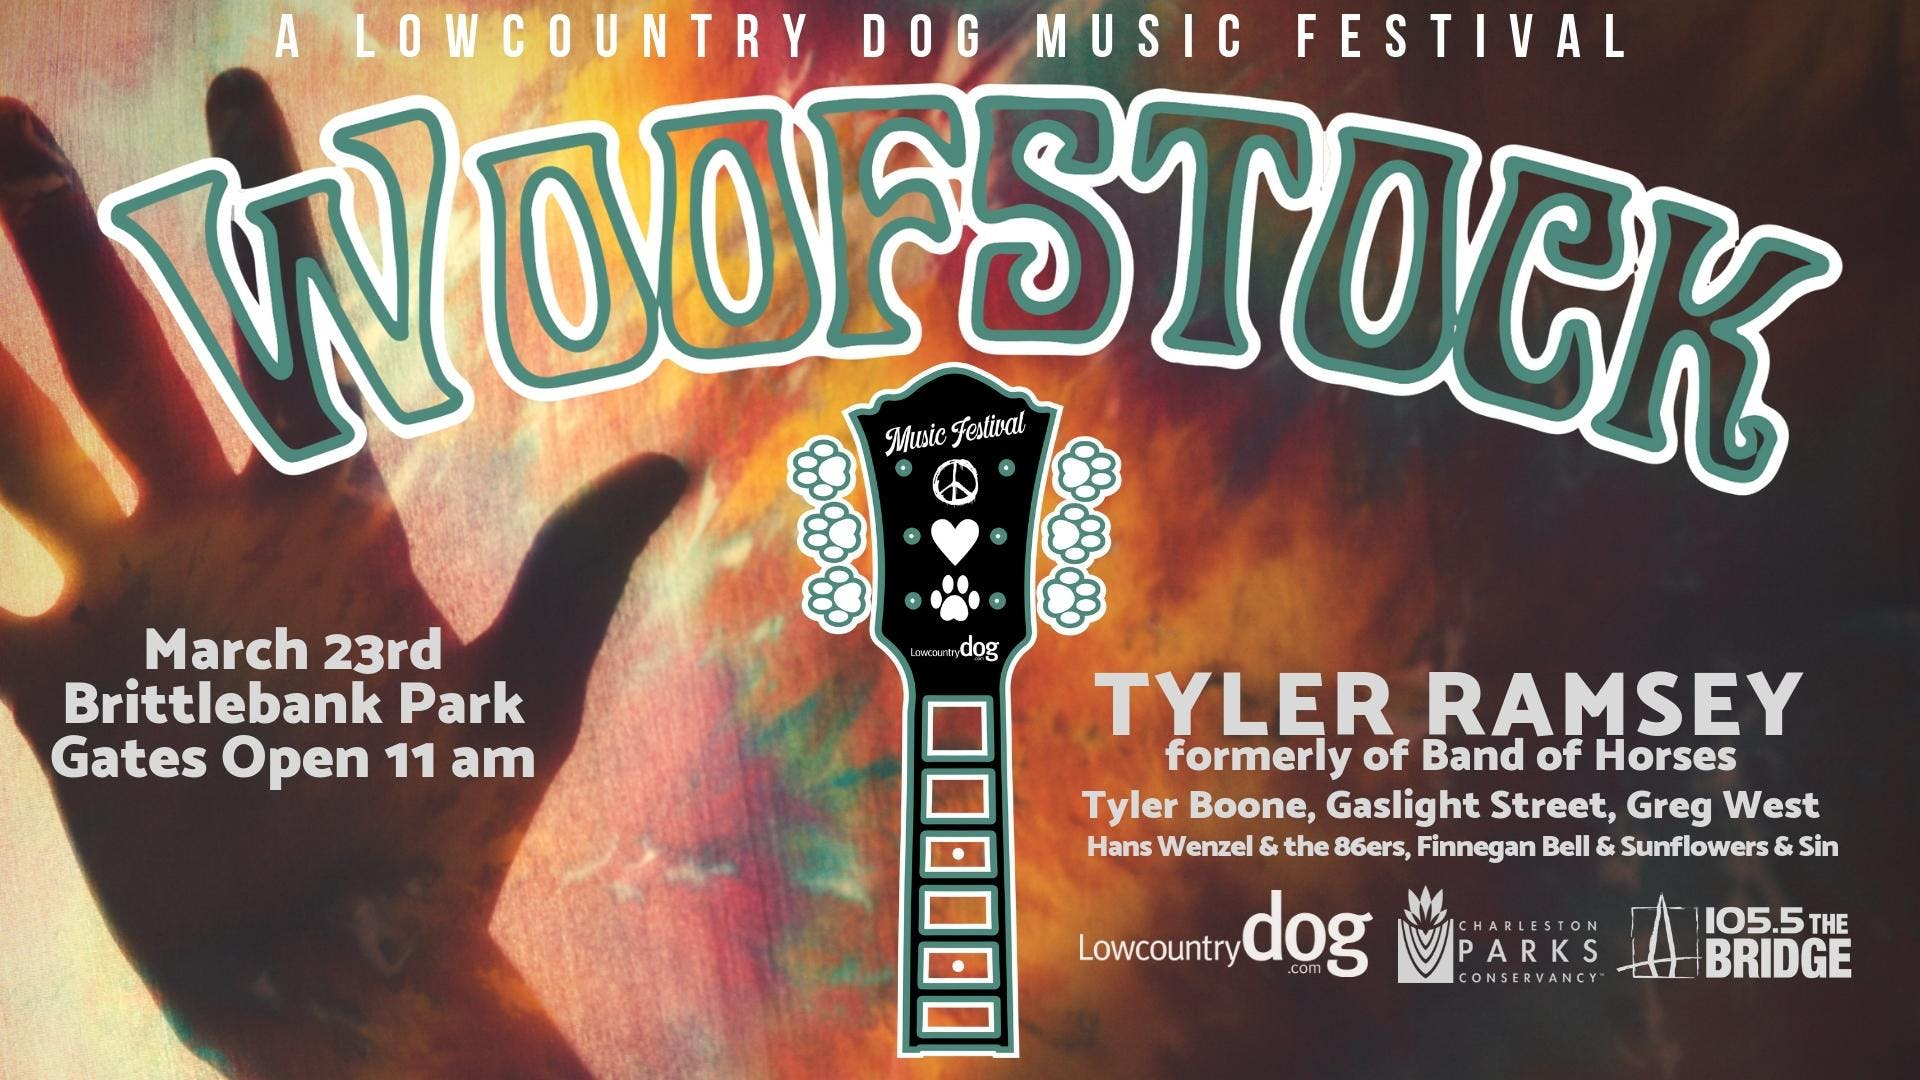 Woofstock: A Lowcountry Dog Music Festival, f